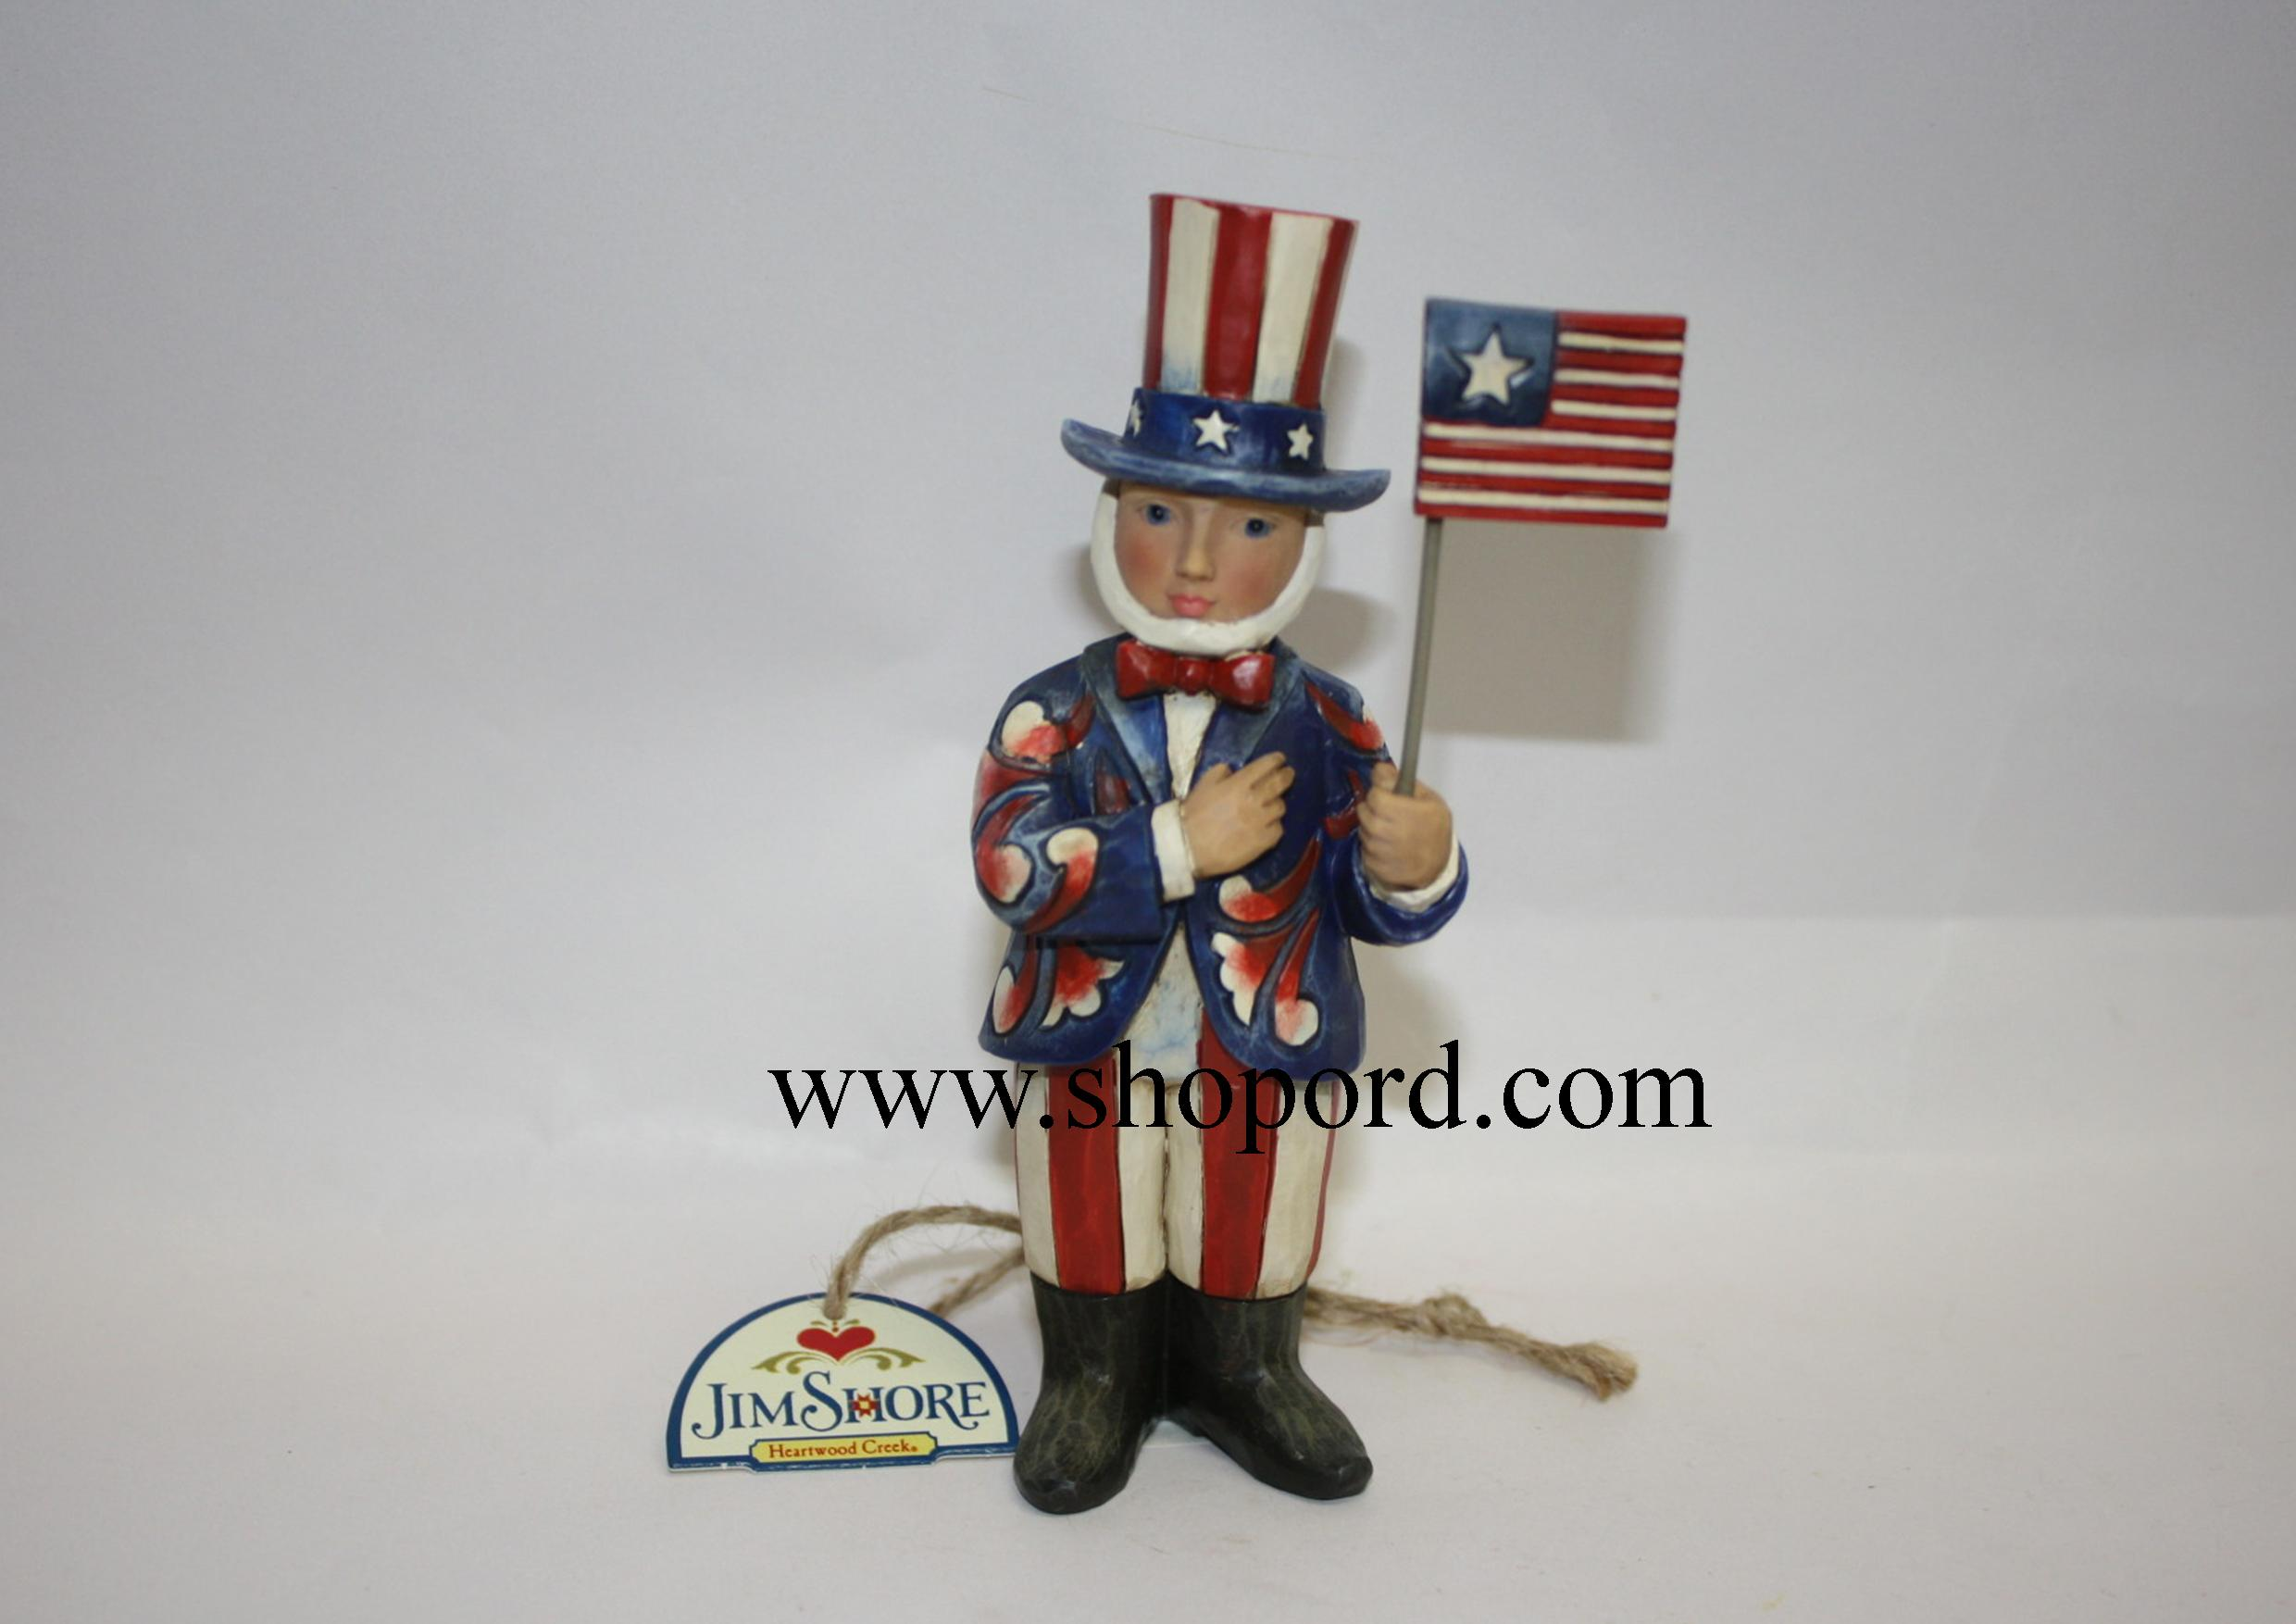 Jim Shore Waves Of Patriotism Pint Sized Uncle Sam Figurine 4031203